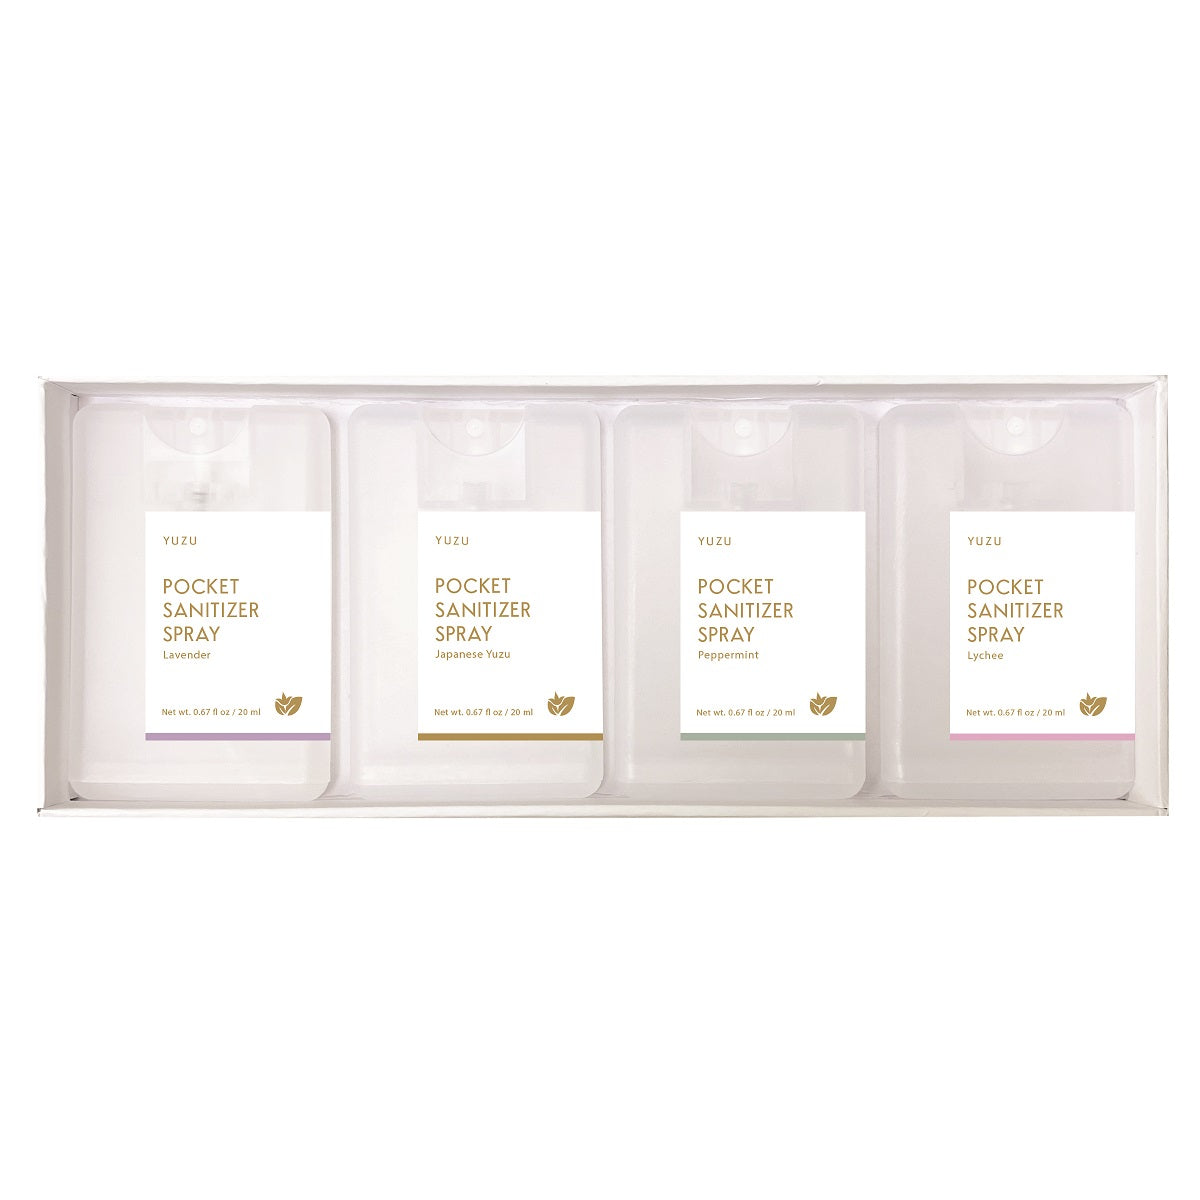 Pocket Sanitizer Pack: Yuzu Soap